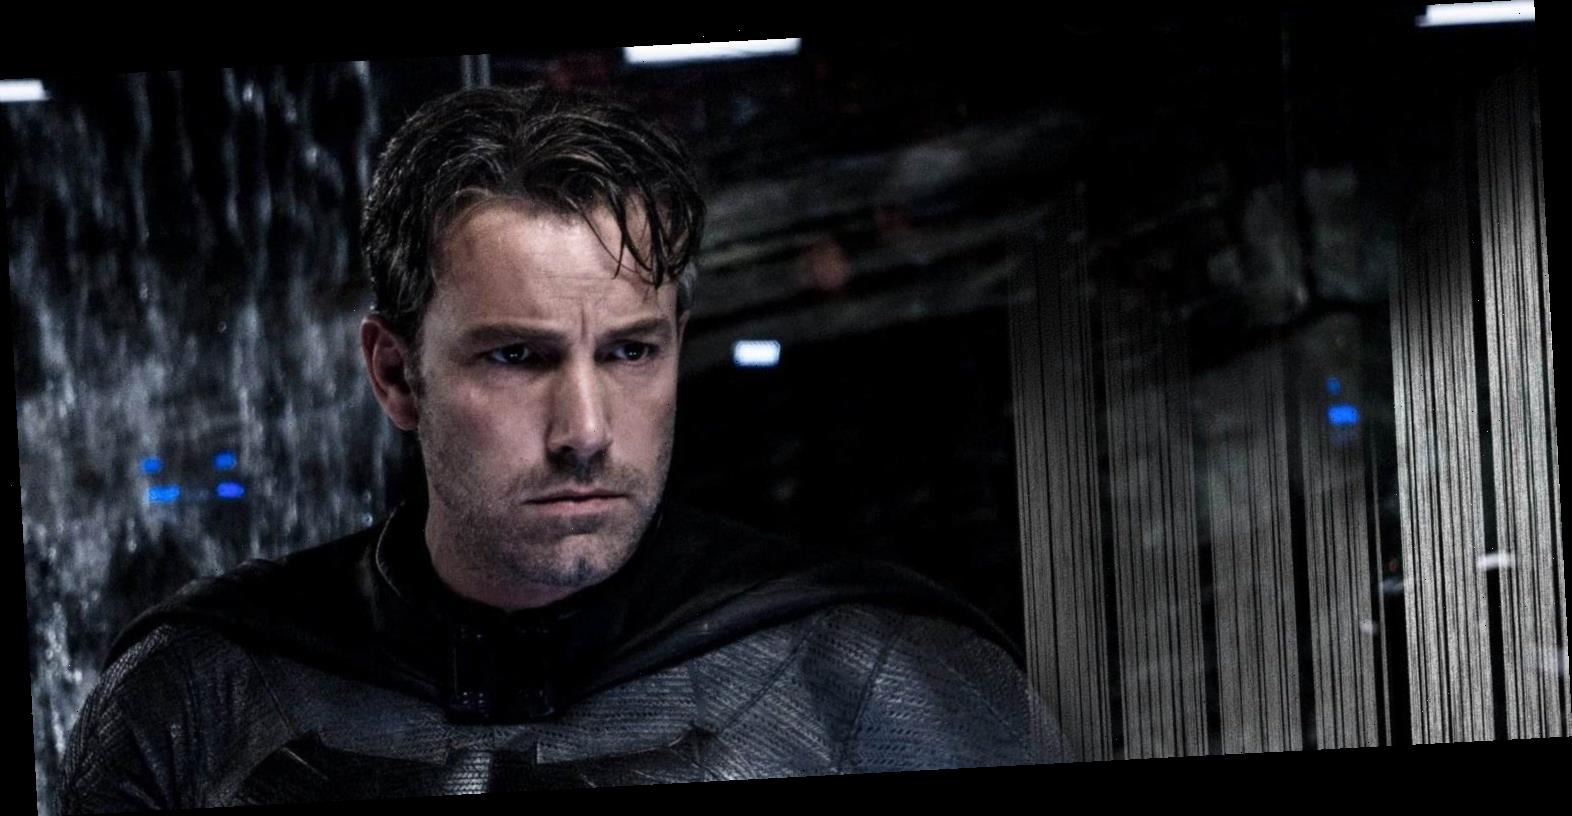 Ben Affleck Opens Up About Struggles With Alcoholism, Why He Left 'The Batman'